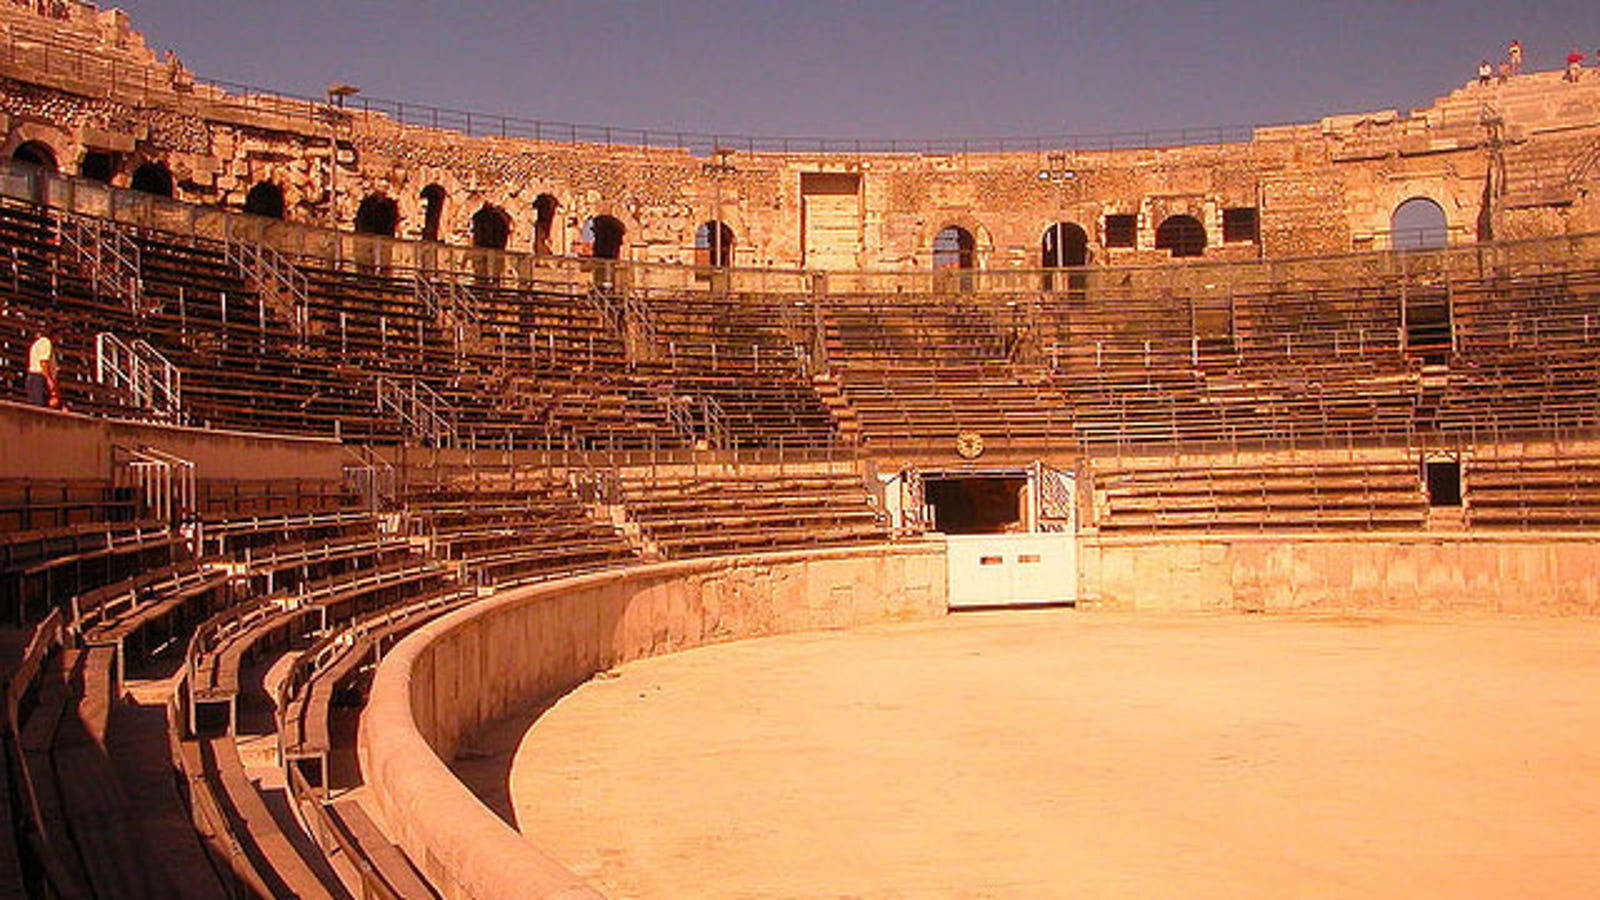 photo regarding Man in the Arena Free Printable known as The Credit score Belongs toward the Male inside of the Arena\